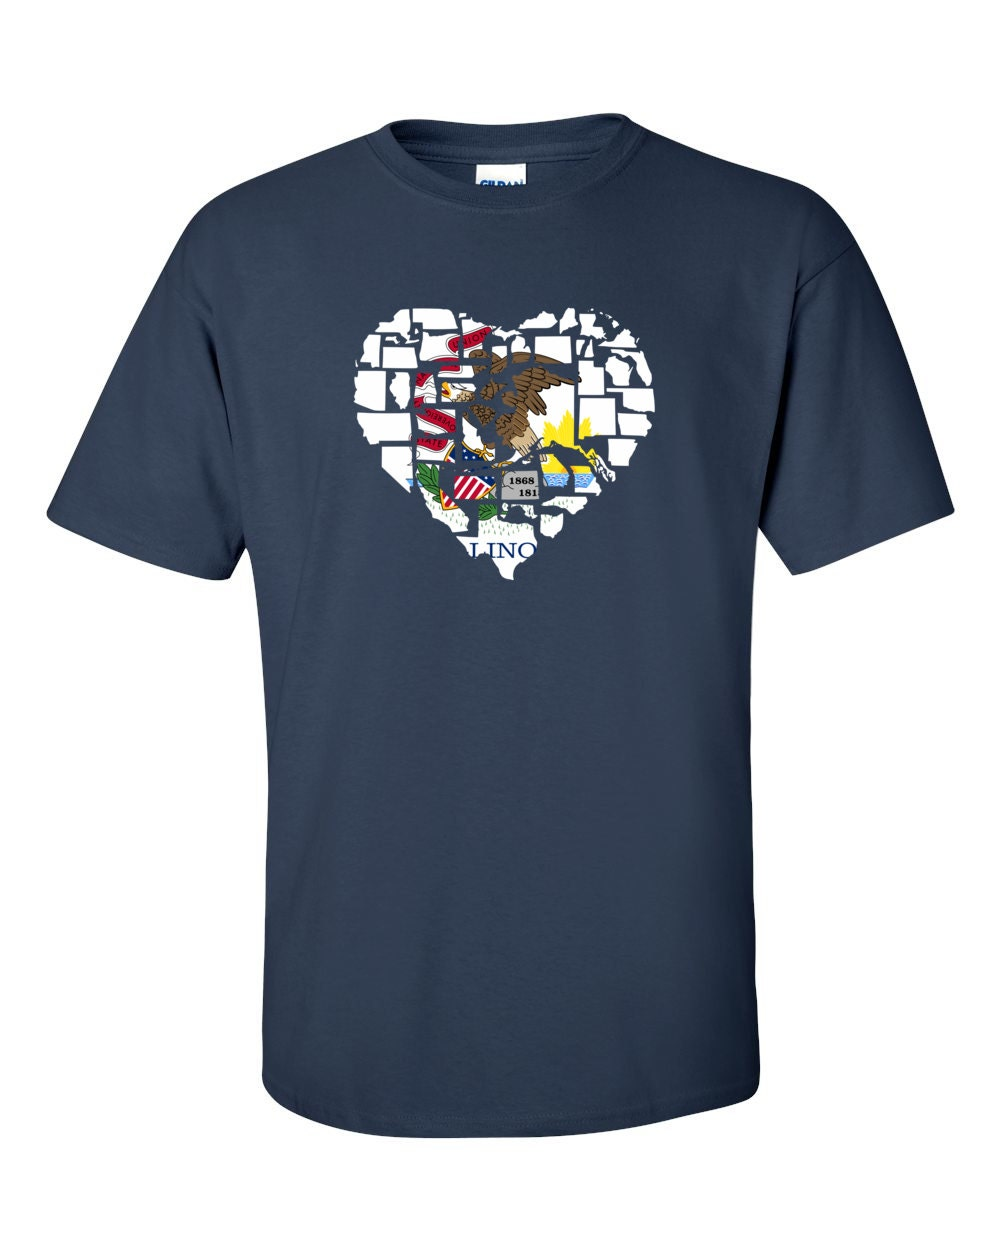 Illinois T-shirt - No Matter Where I Am, Illinois Is Alway In My Heart - My State Illinois T-shirt